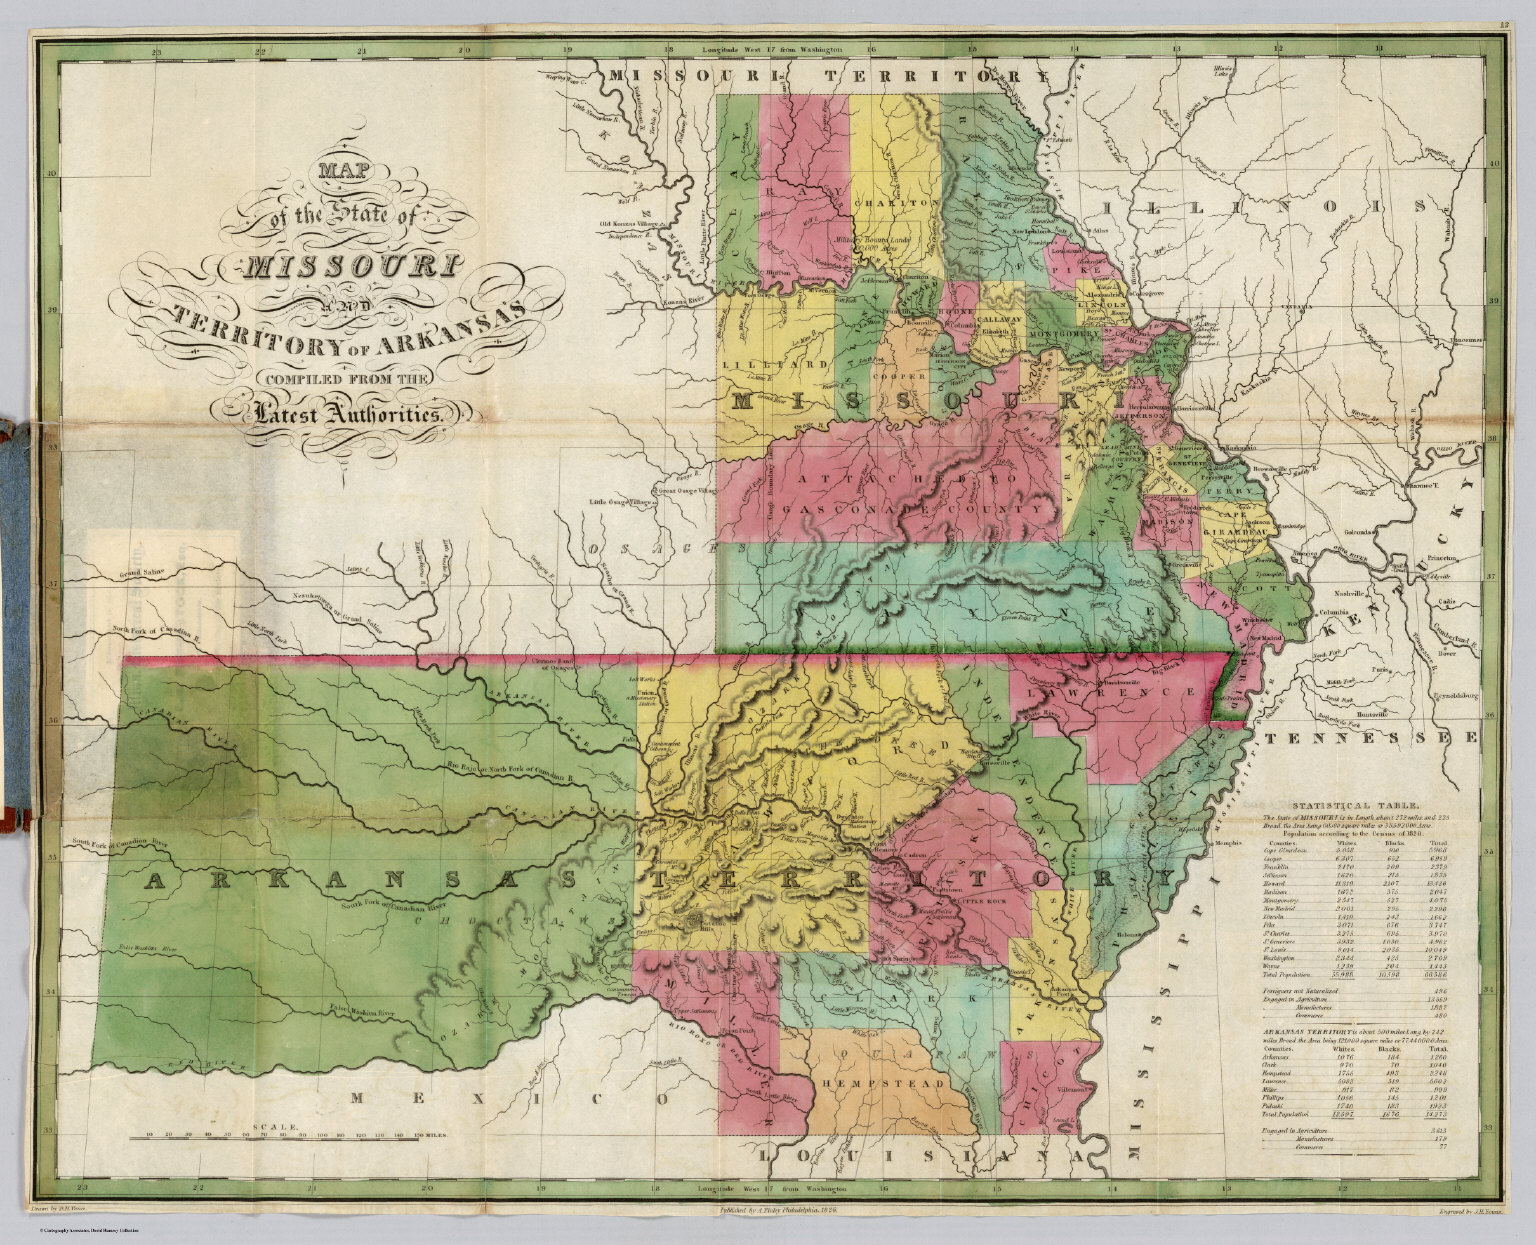 Missouri And Territory Of Arkansas   David Rumsey Historical Map